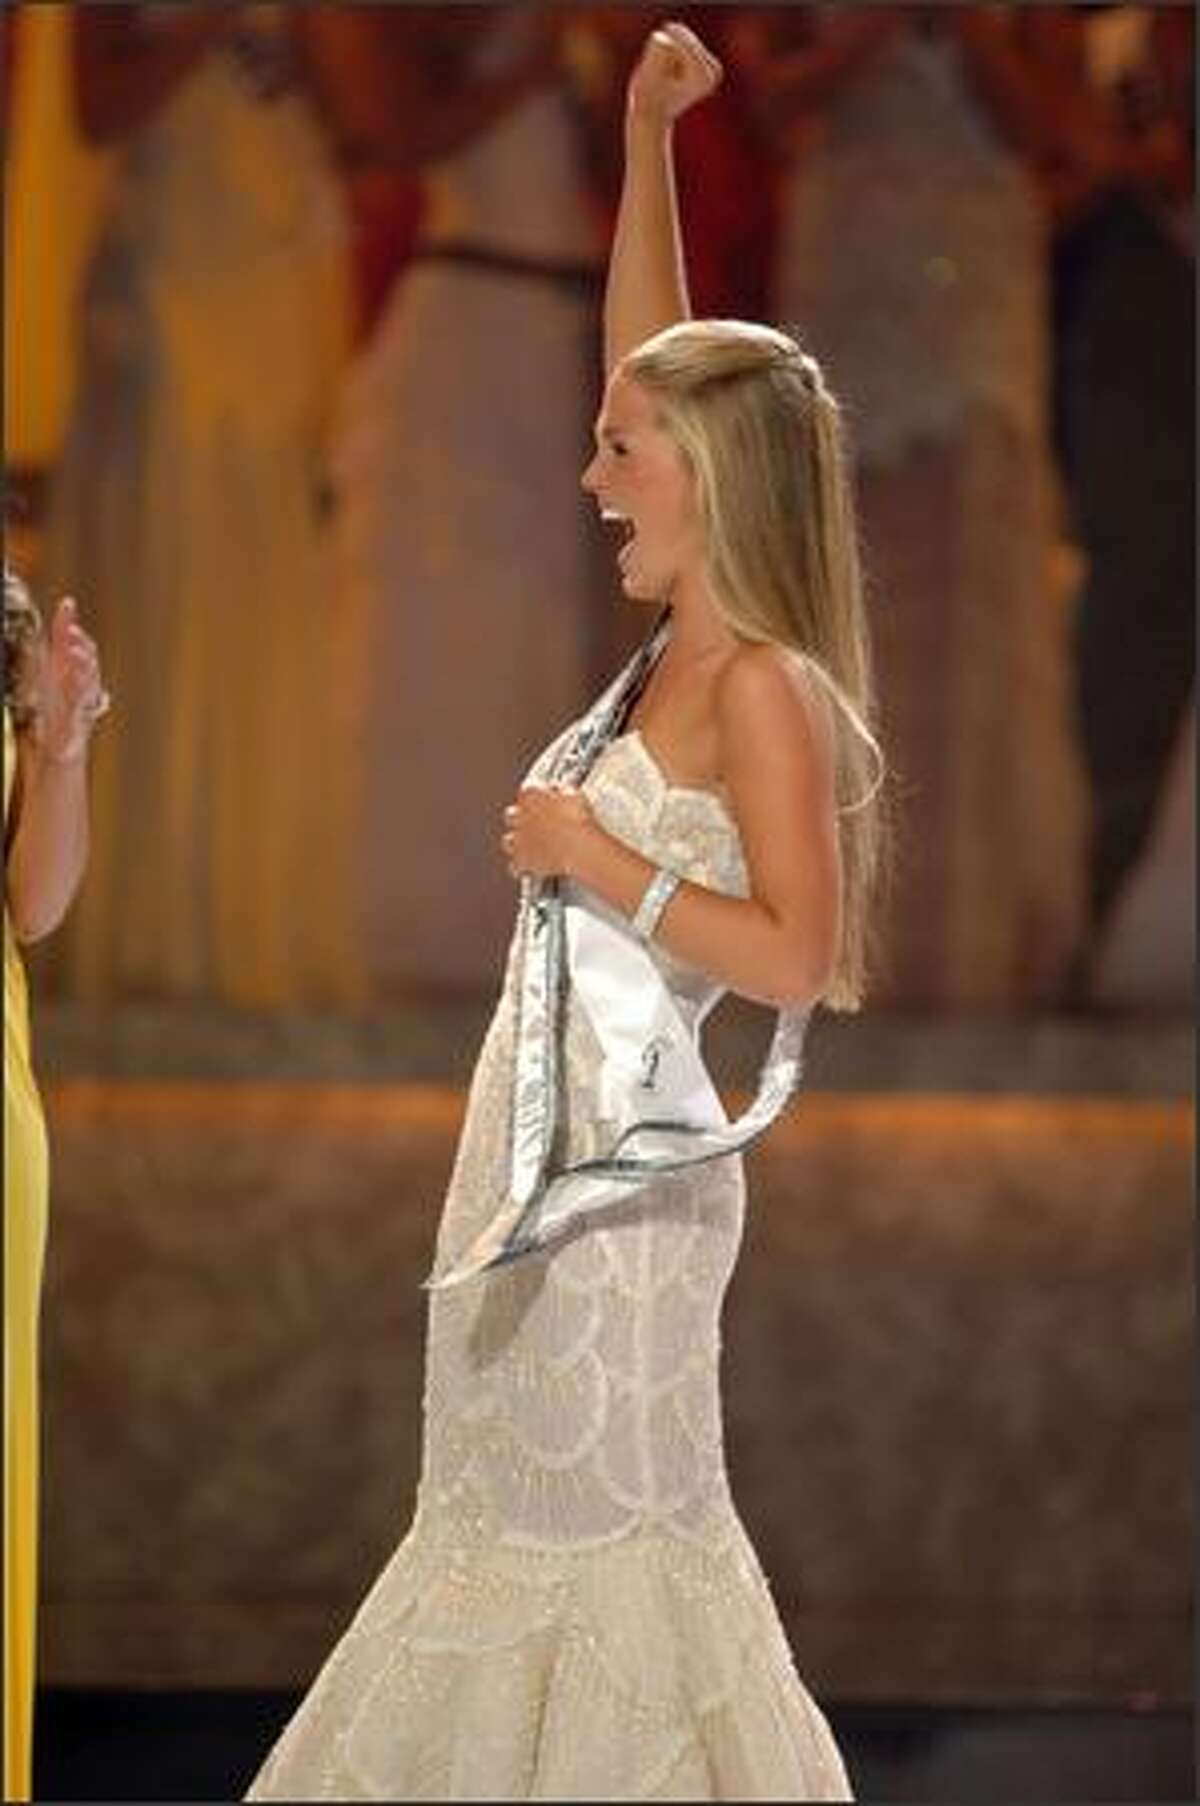 Allie LaForce, 16, from Vermilion, Ohio, reacts after being named Miss Teen USA 2005 at the conclusion of the live NBC broadcast of the 22nd annual competition. She will spend her year-long reign making special appearances on behalf of the Miss Universe Organization, its sponsors and affiliated charities.